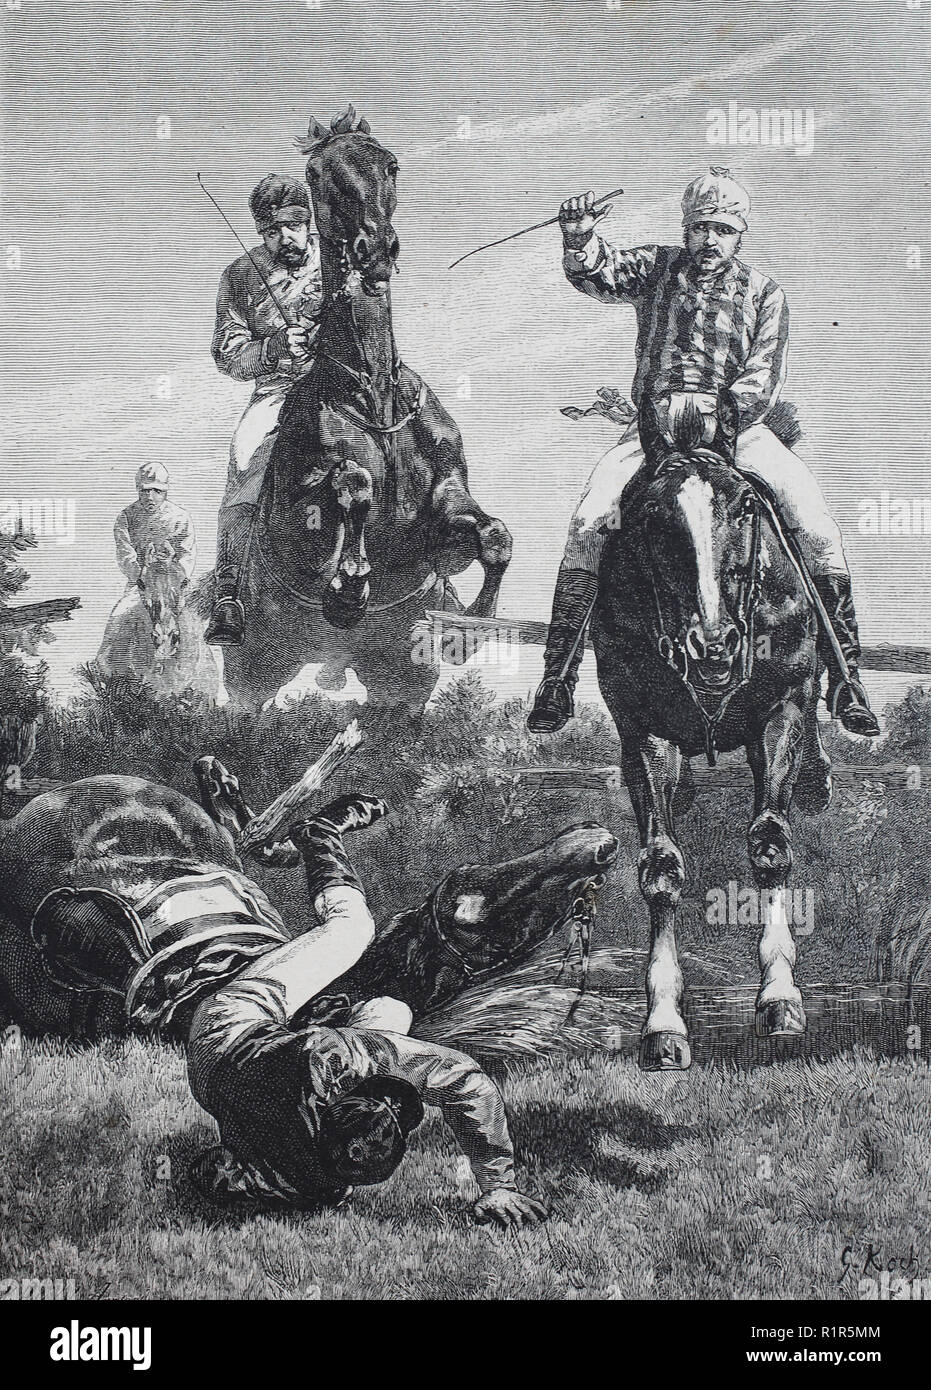 Digital improved reproduction, an accident at military riding tournament, original print from the year 1880 - Stock Image